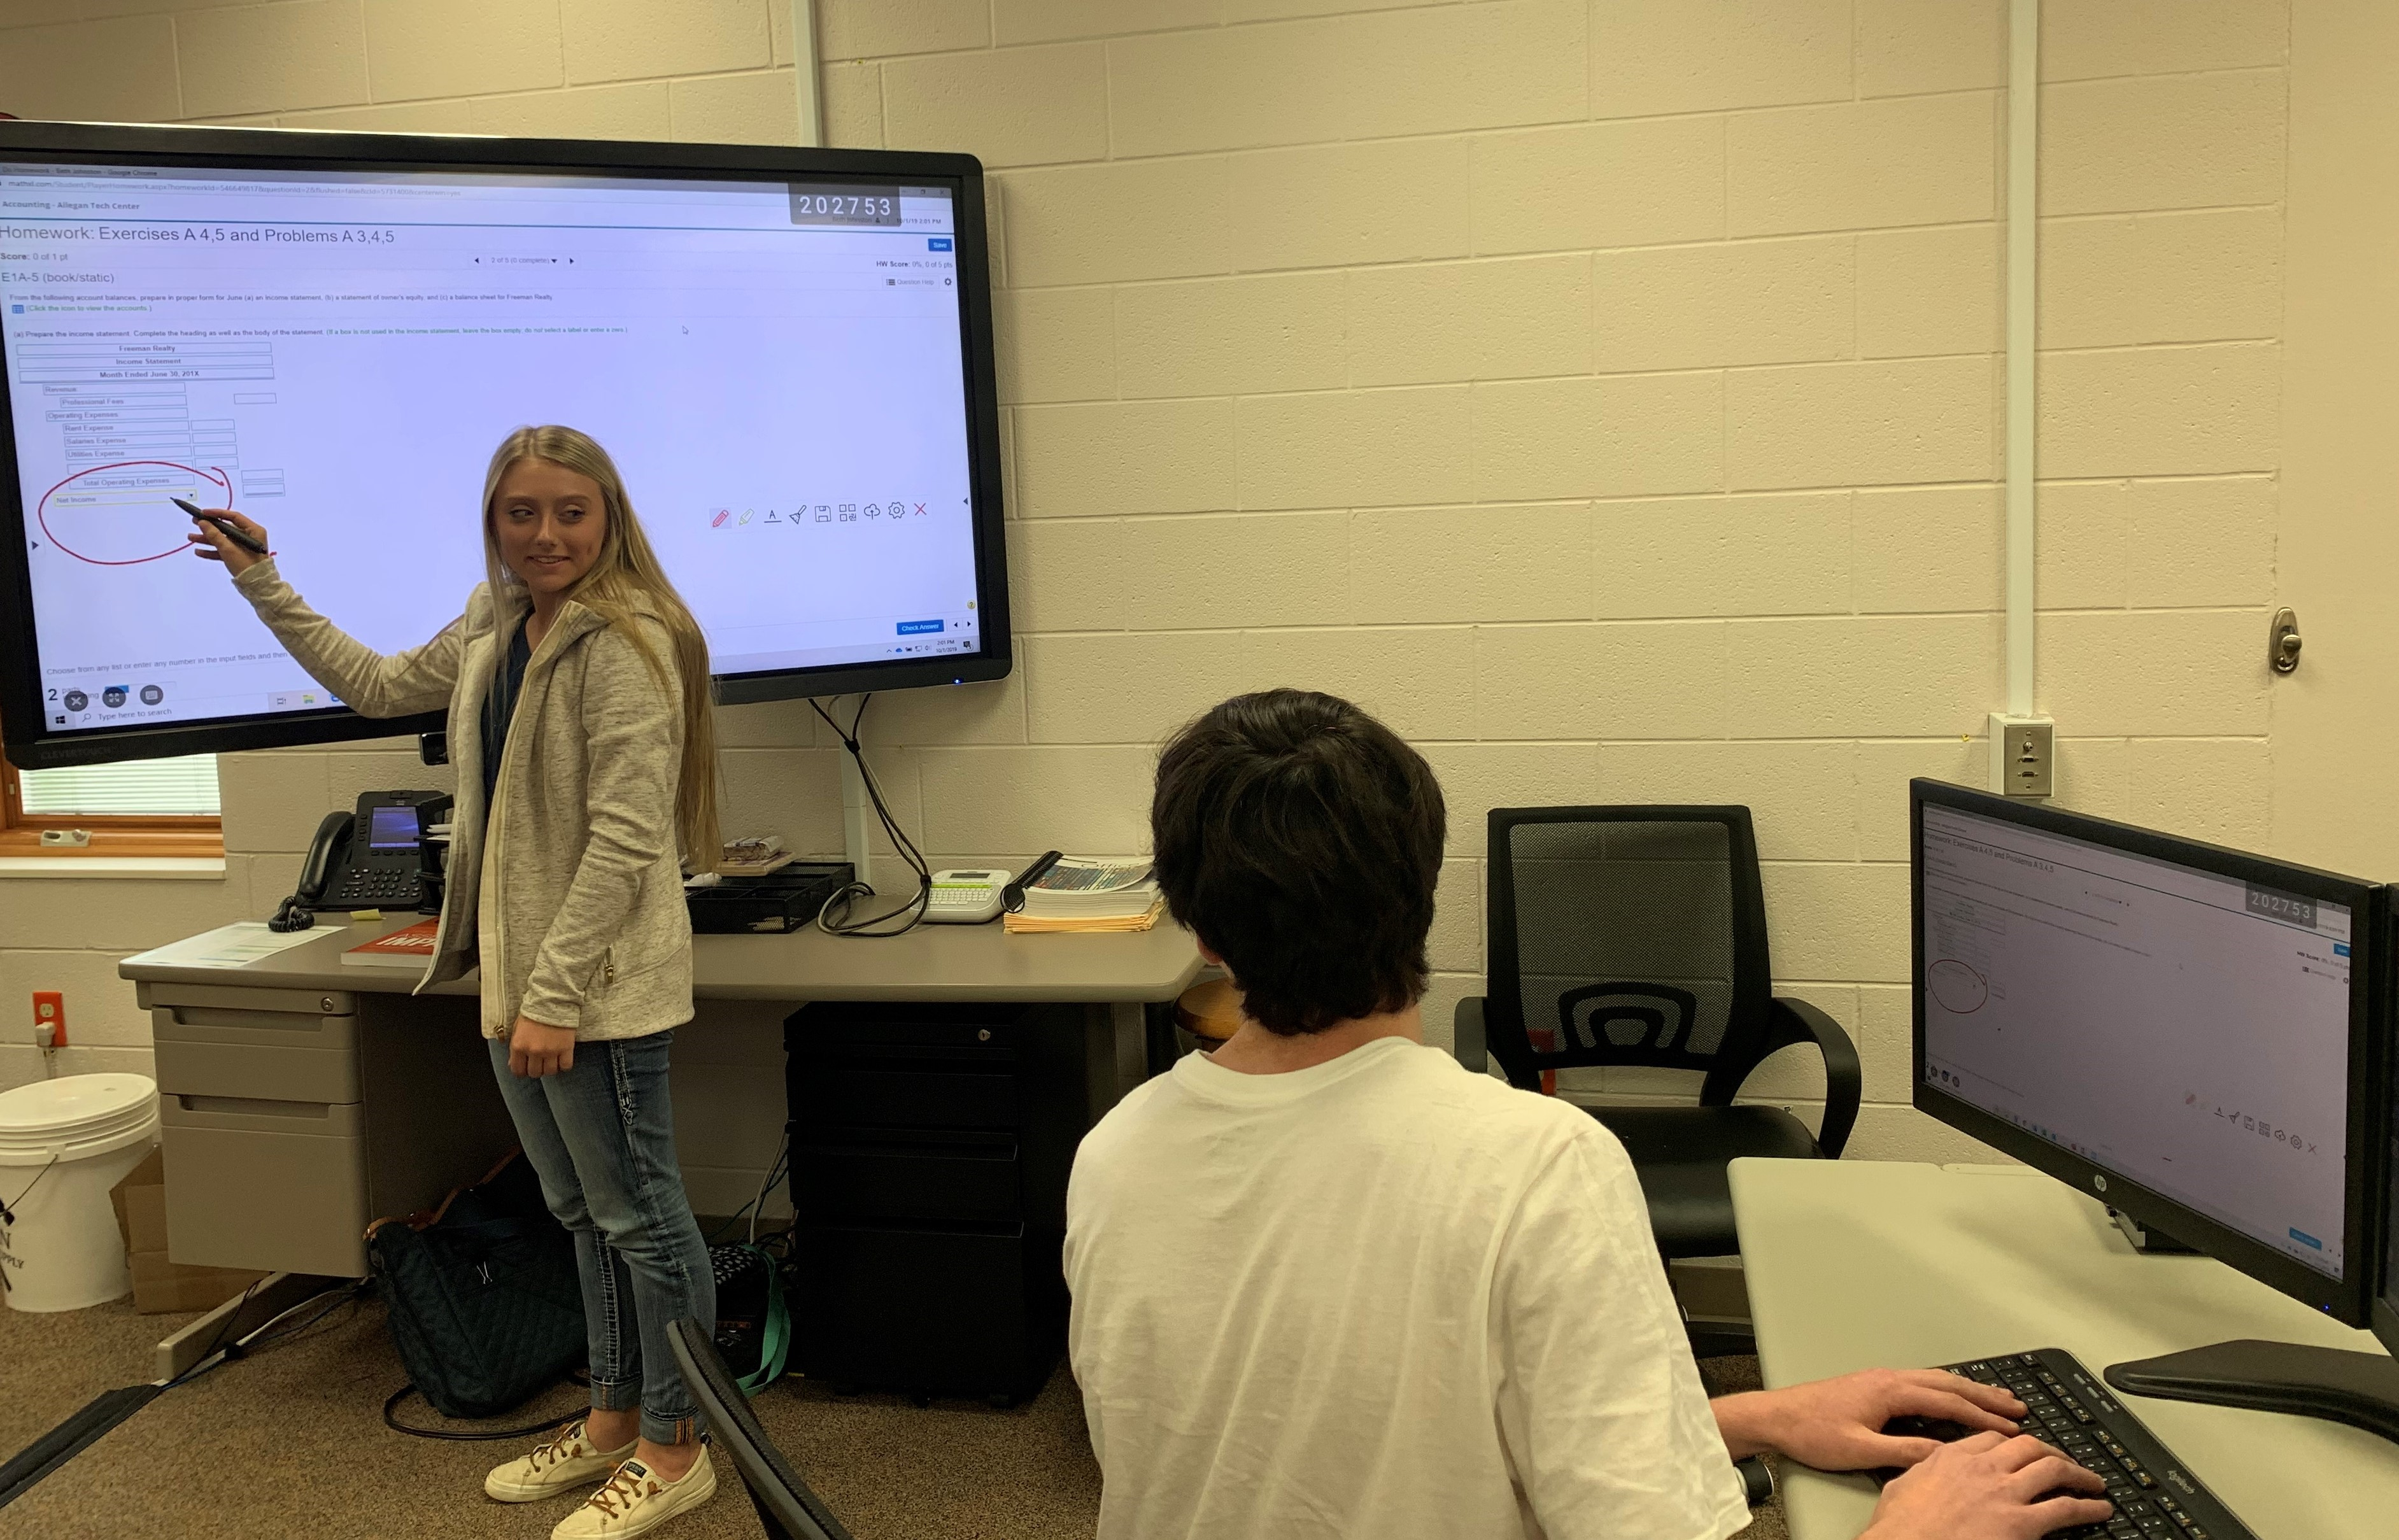 Students from Accounting and Marketing and Management are using a Clevertouch screen